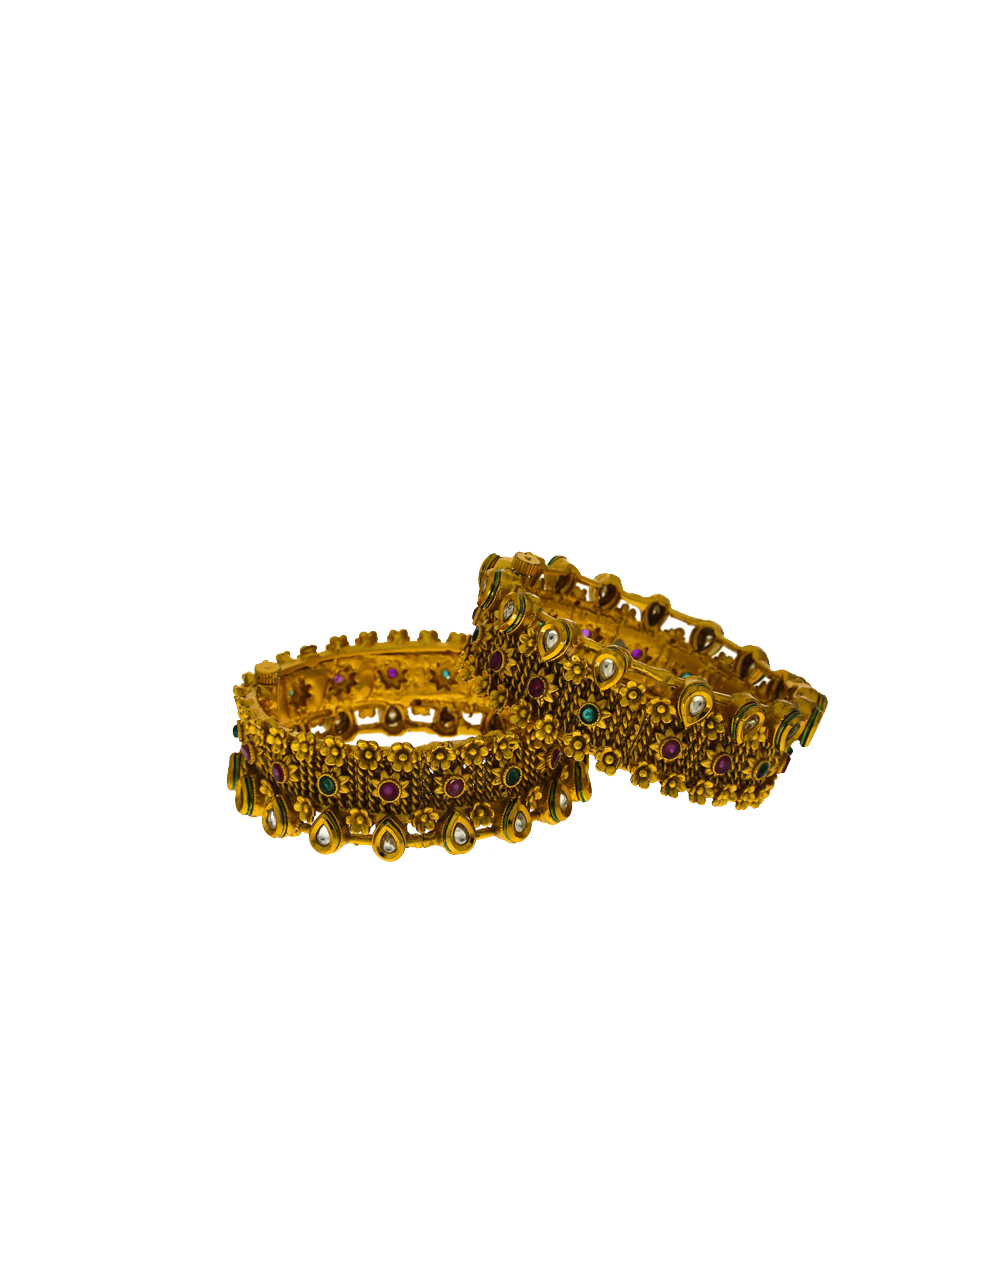 Exclusive Floral Designed Golden Finish Traditional Bangles For Women.